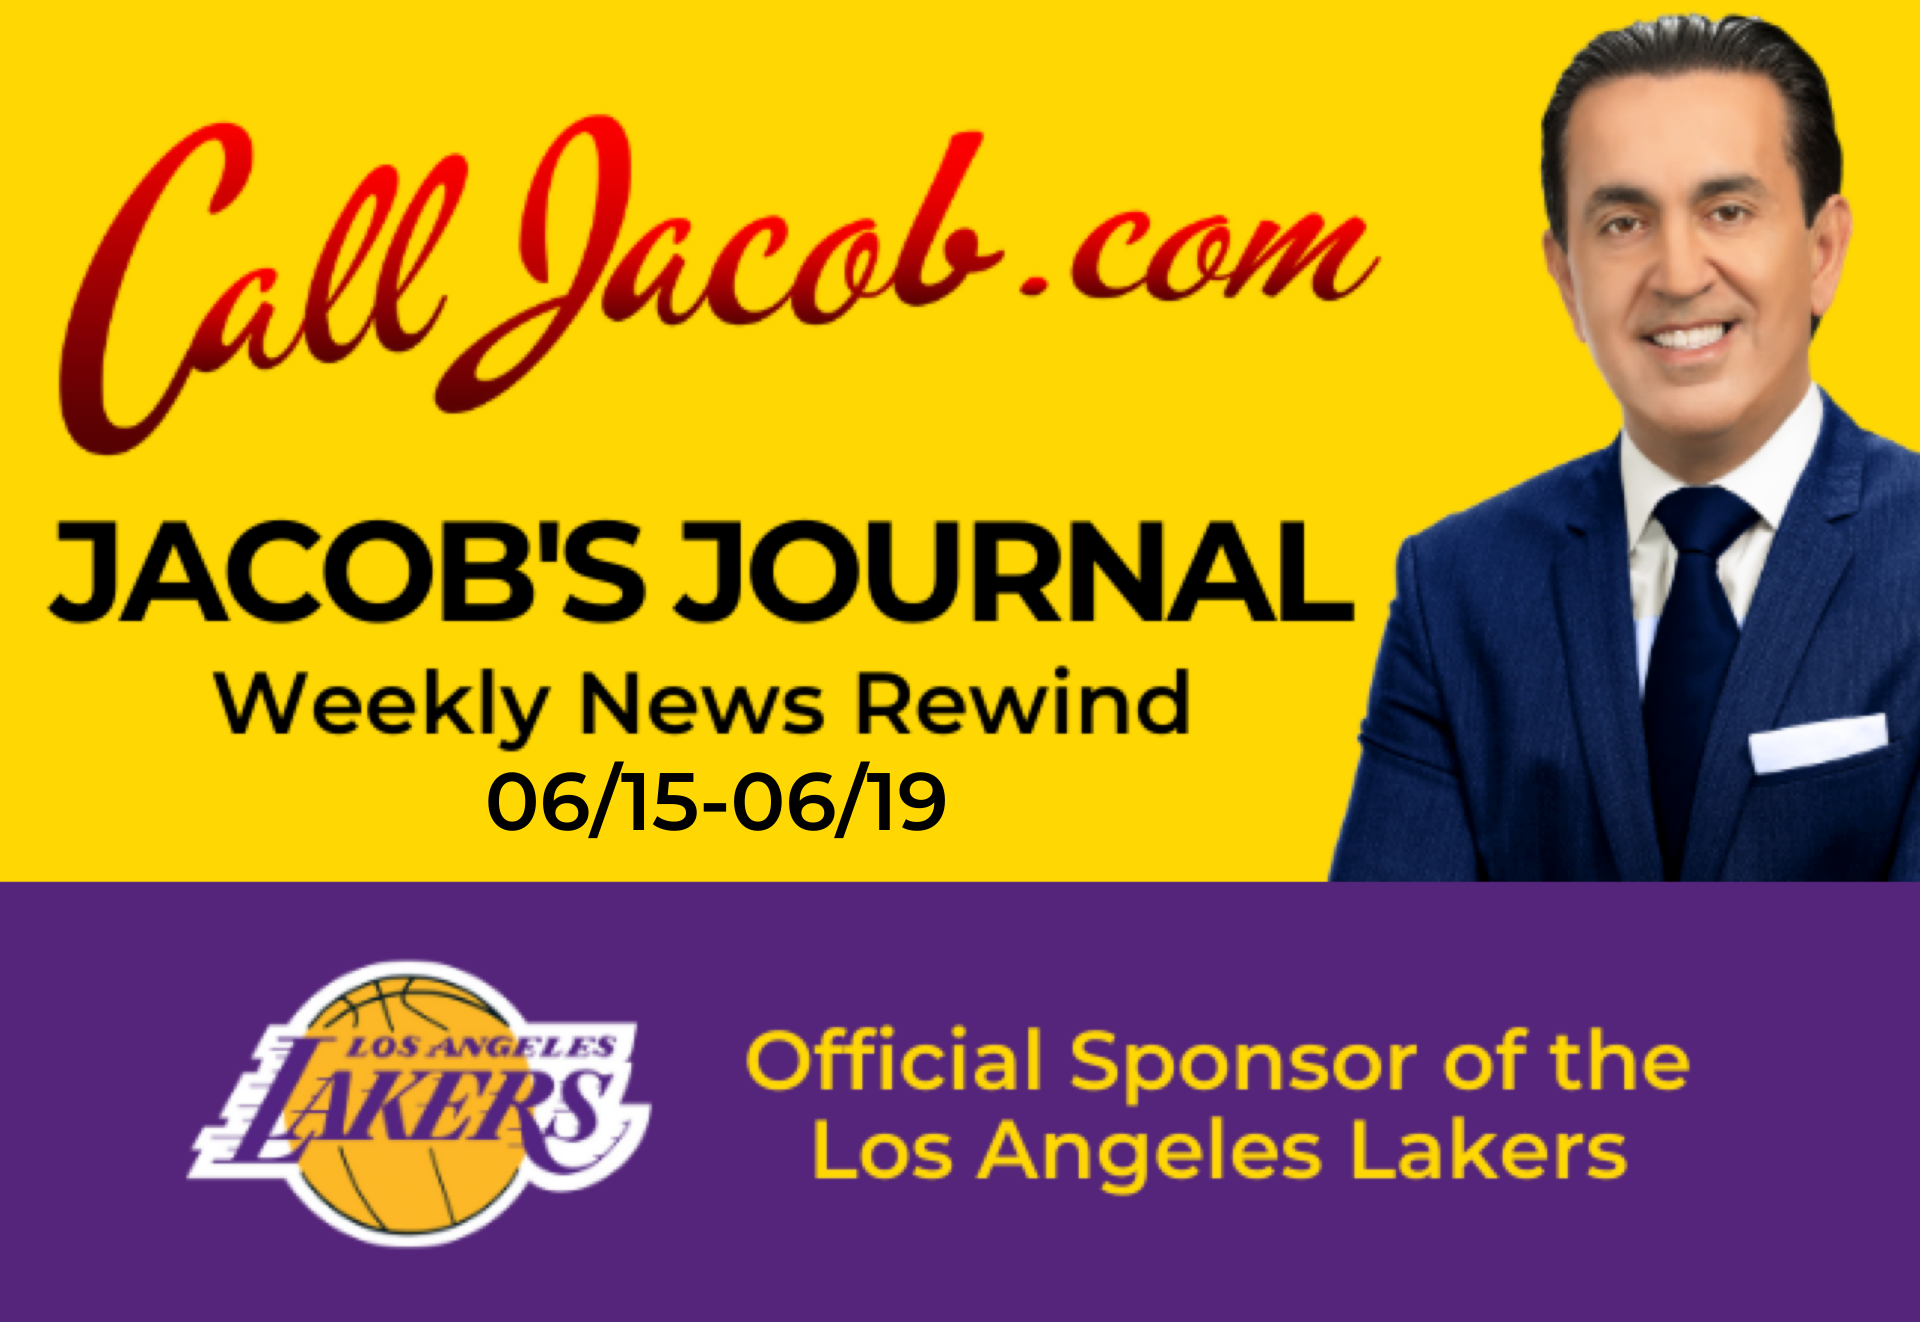 Jacobs Journal Weekly News Rewind June 15th to June 19th